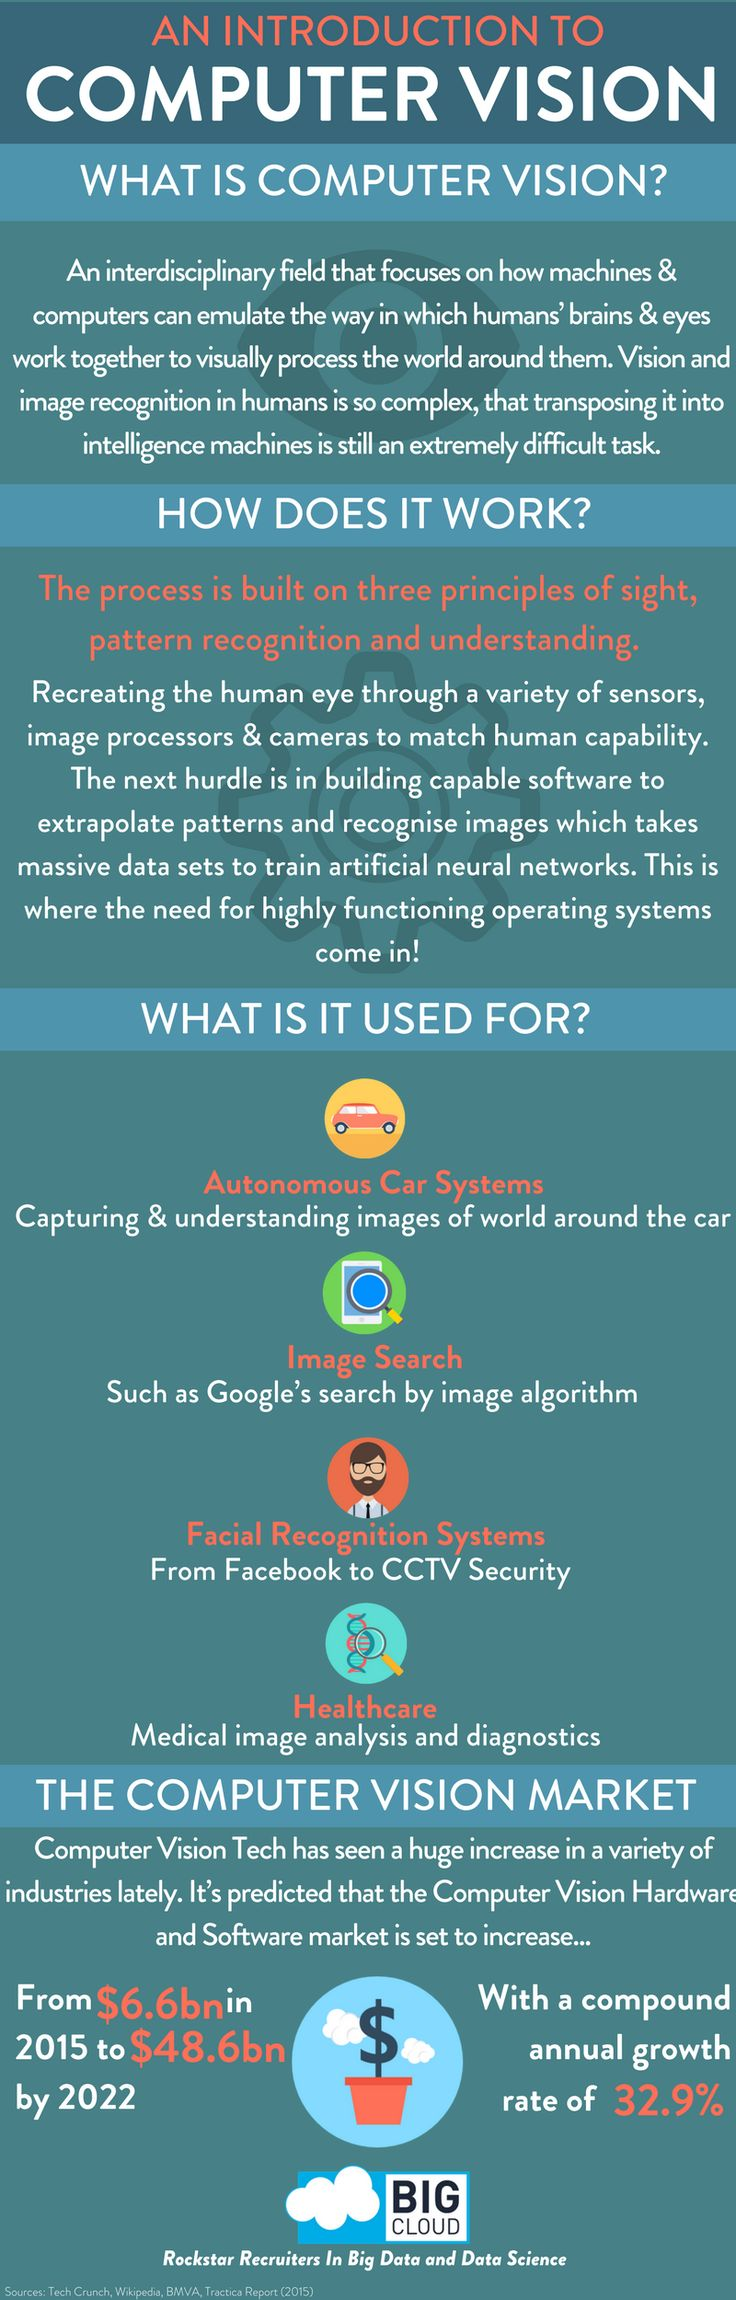 An Introduction To Computer Vision! #ComputerVision #DeepLearning #FacialRecognition #ArtificialIntelligence